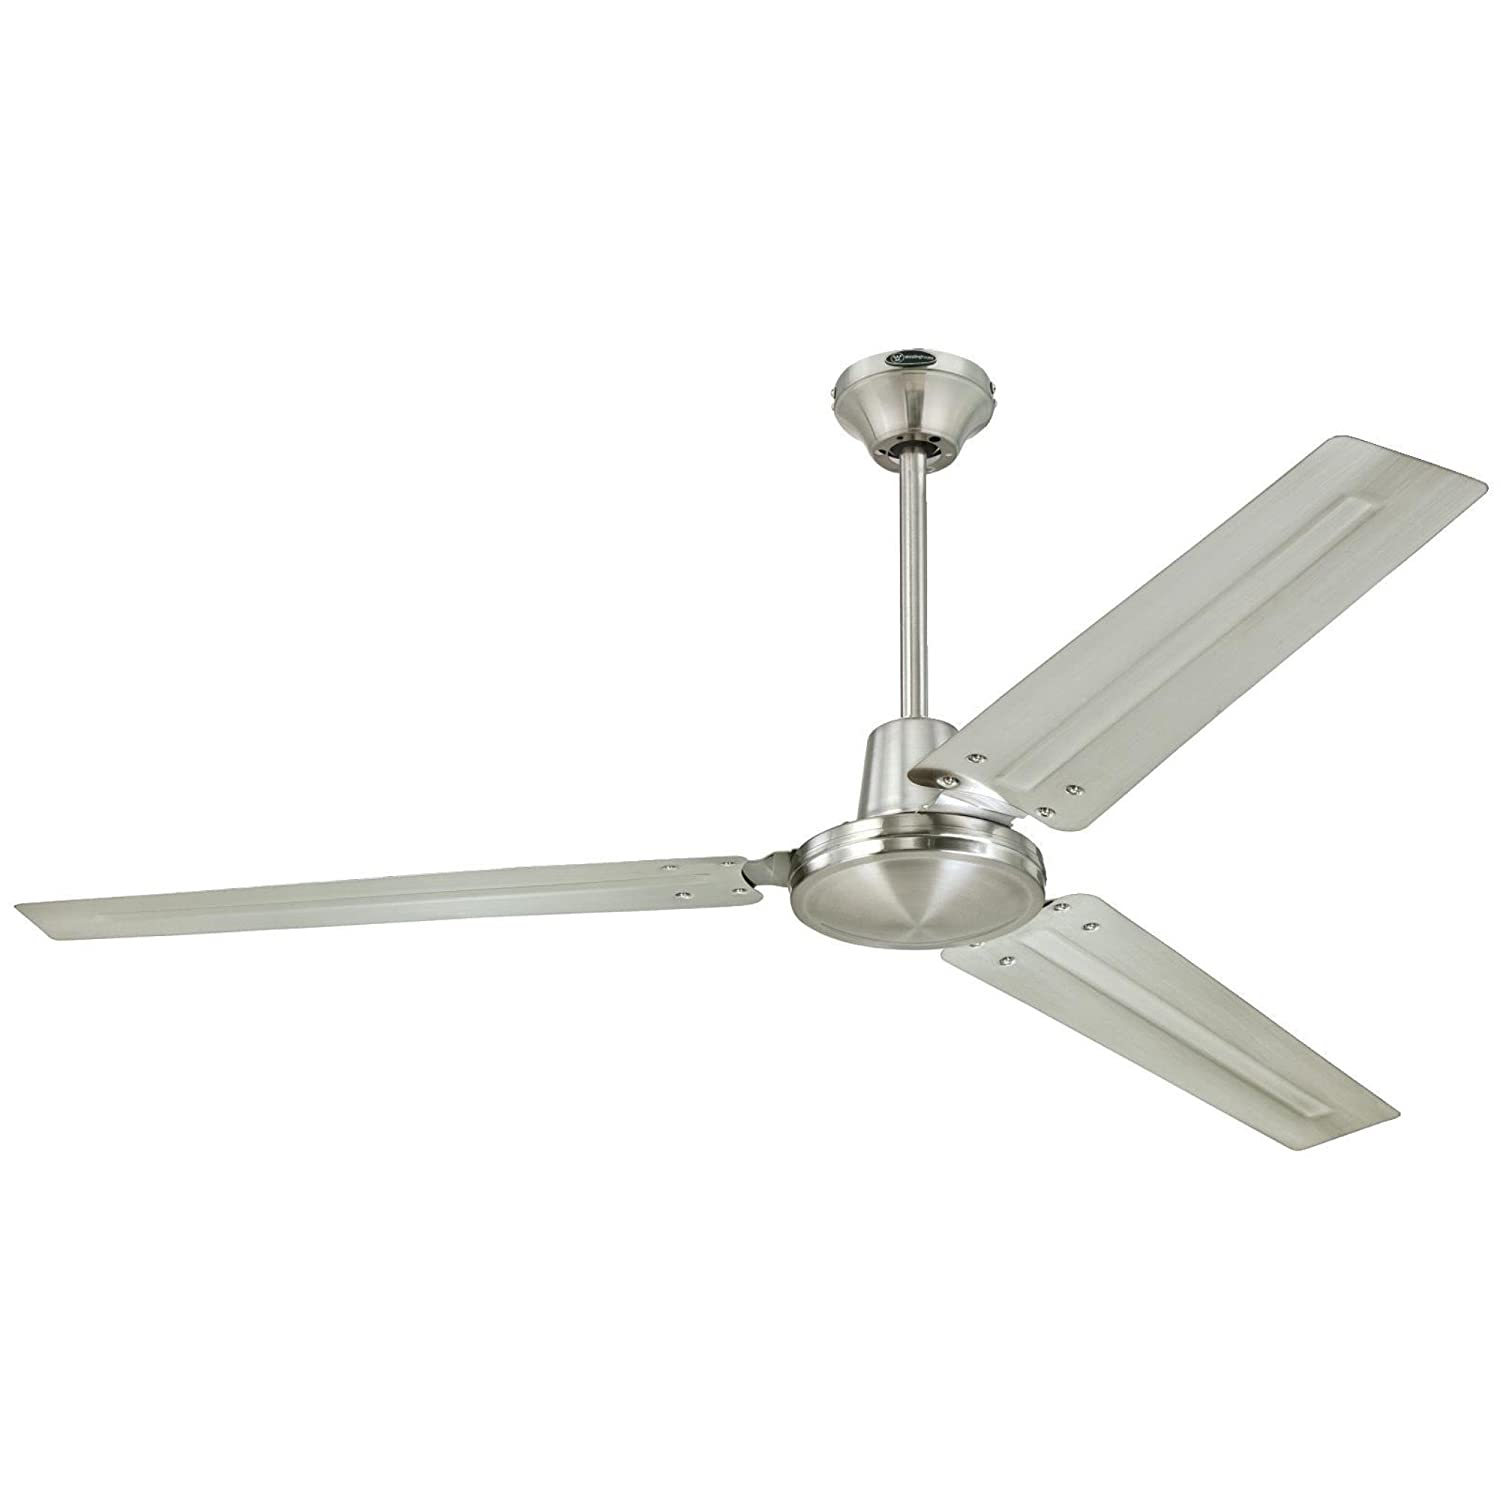 lodge interior fan and size outdoor ceilings of carlo buying lights general industrial ceiling rustic beautiful full monte barn diy with light durango blades fans by guide